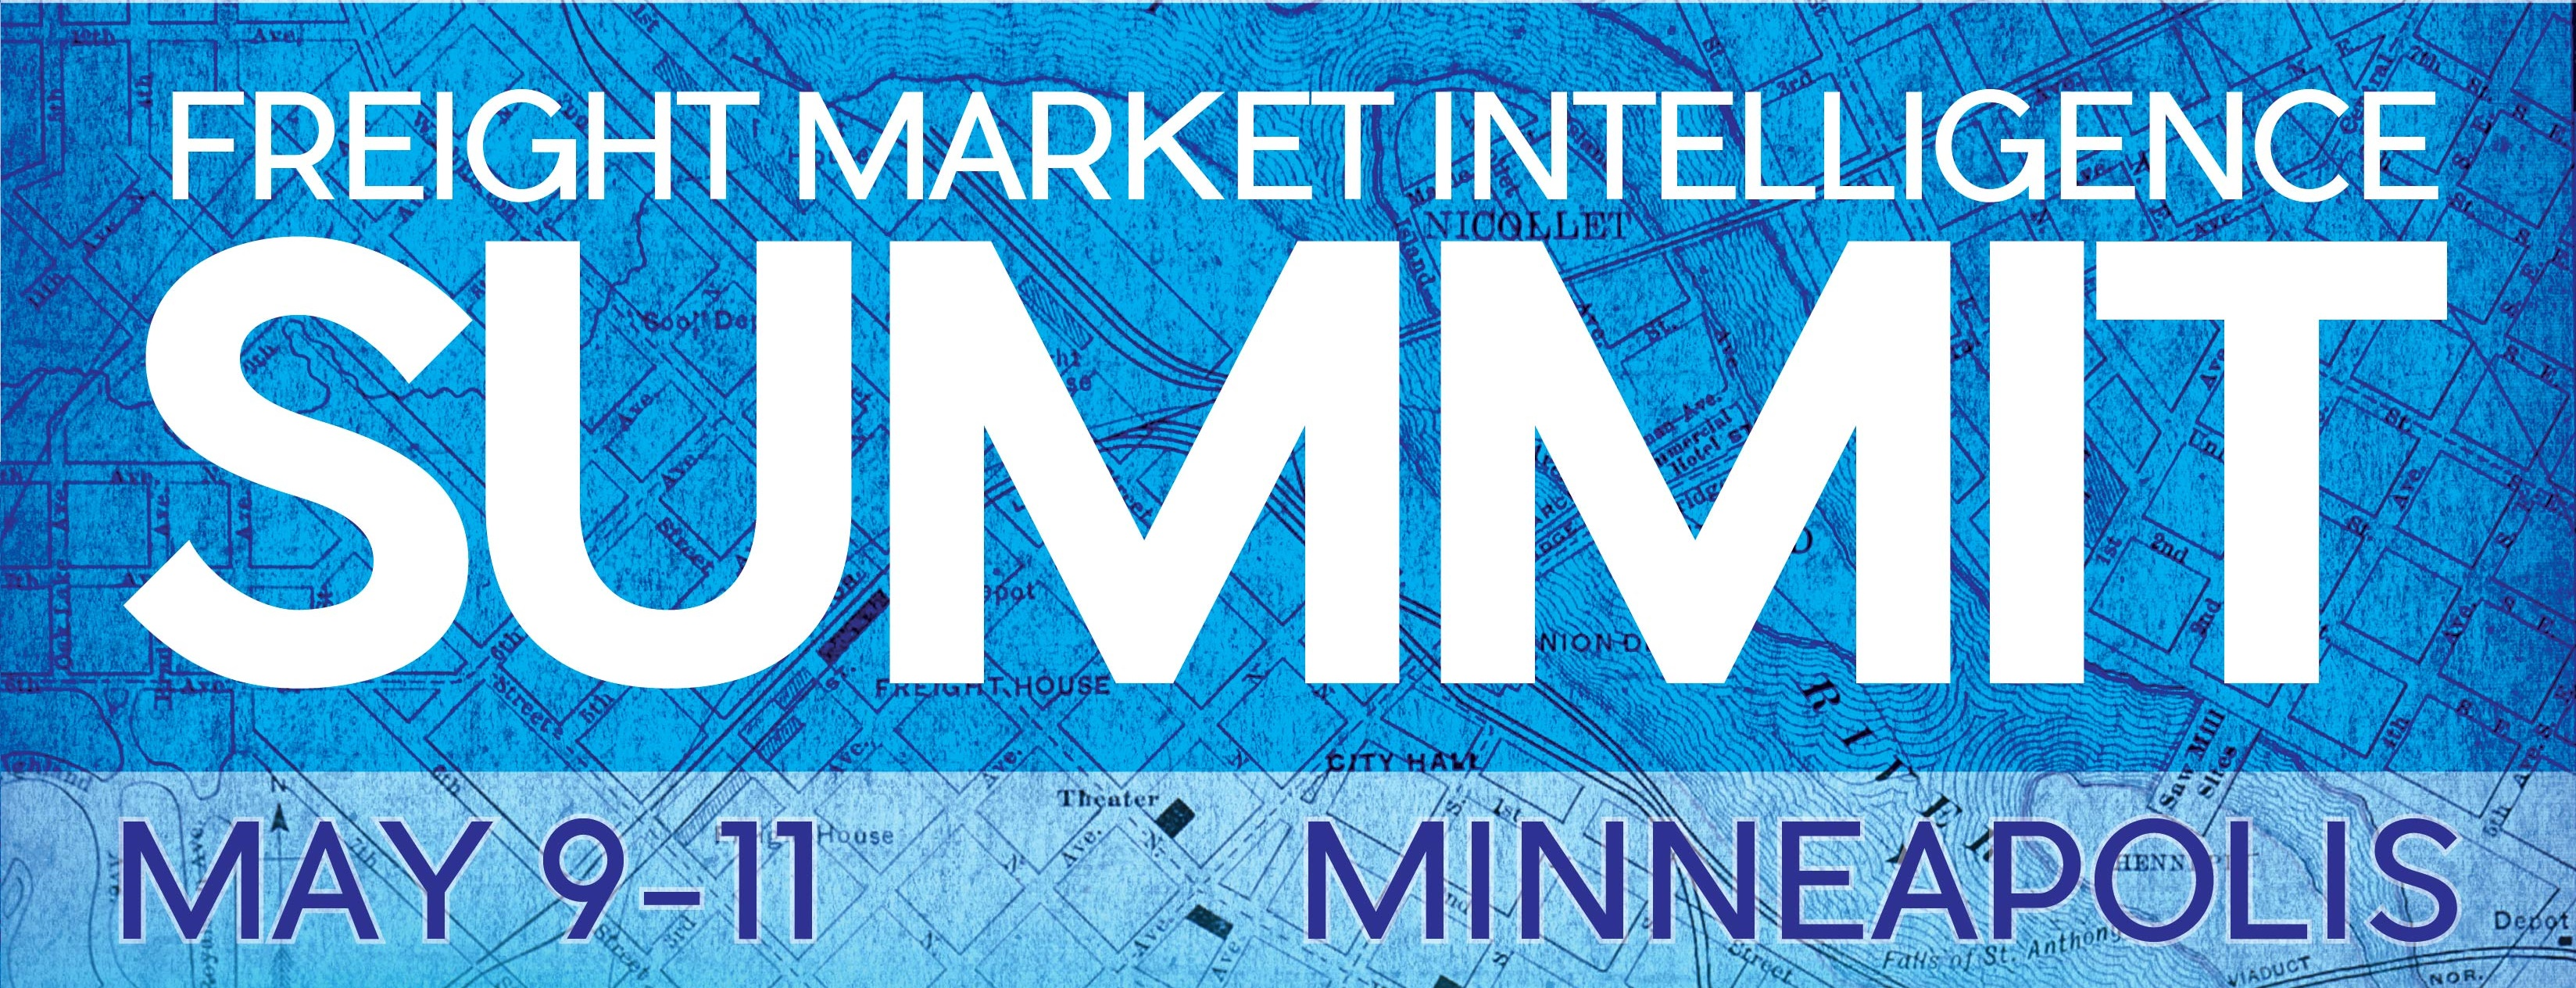 11th Annual Freight Market Intelligence Summit